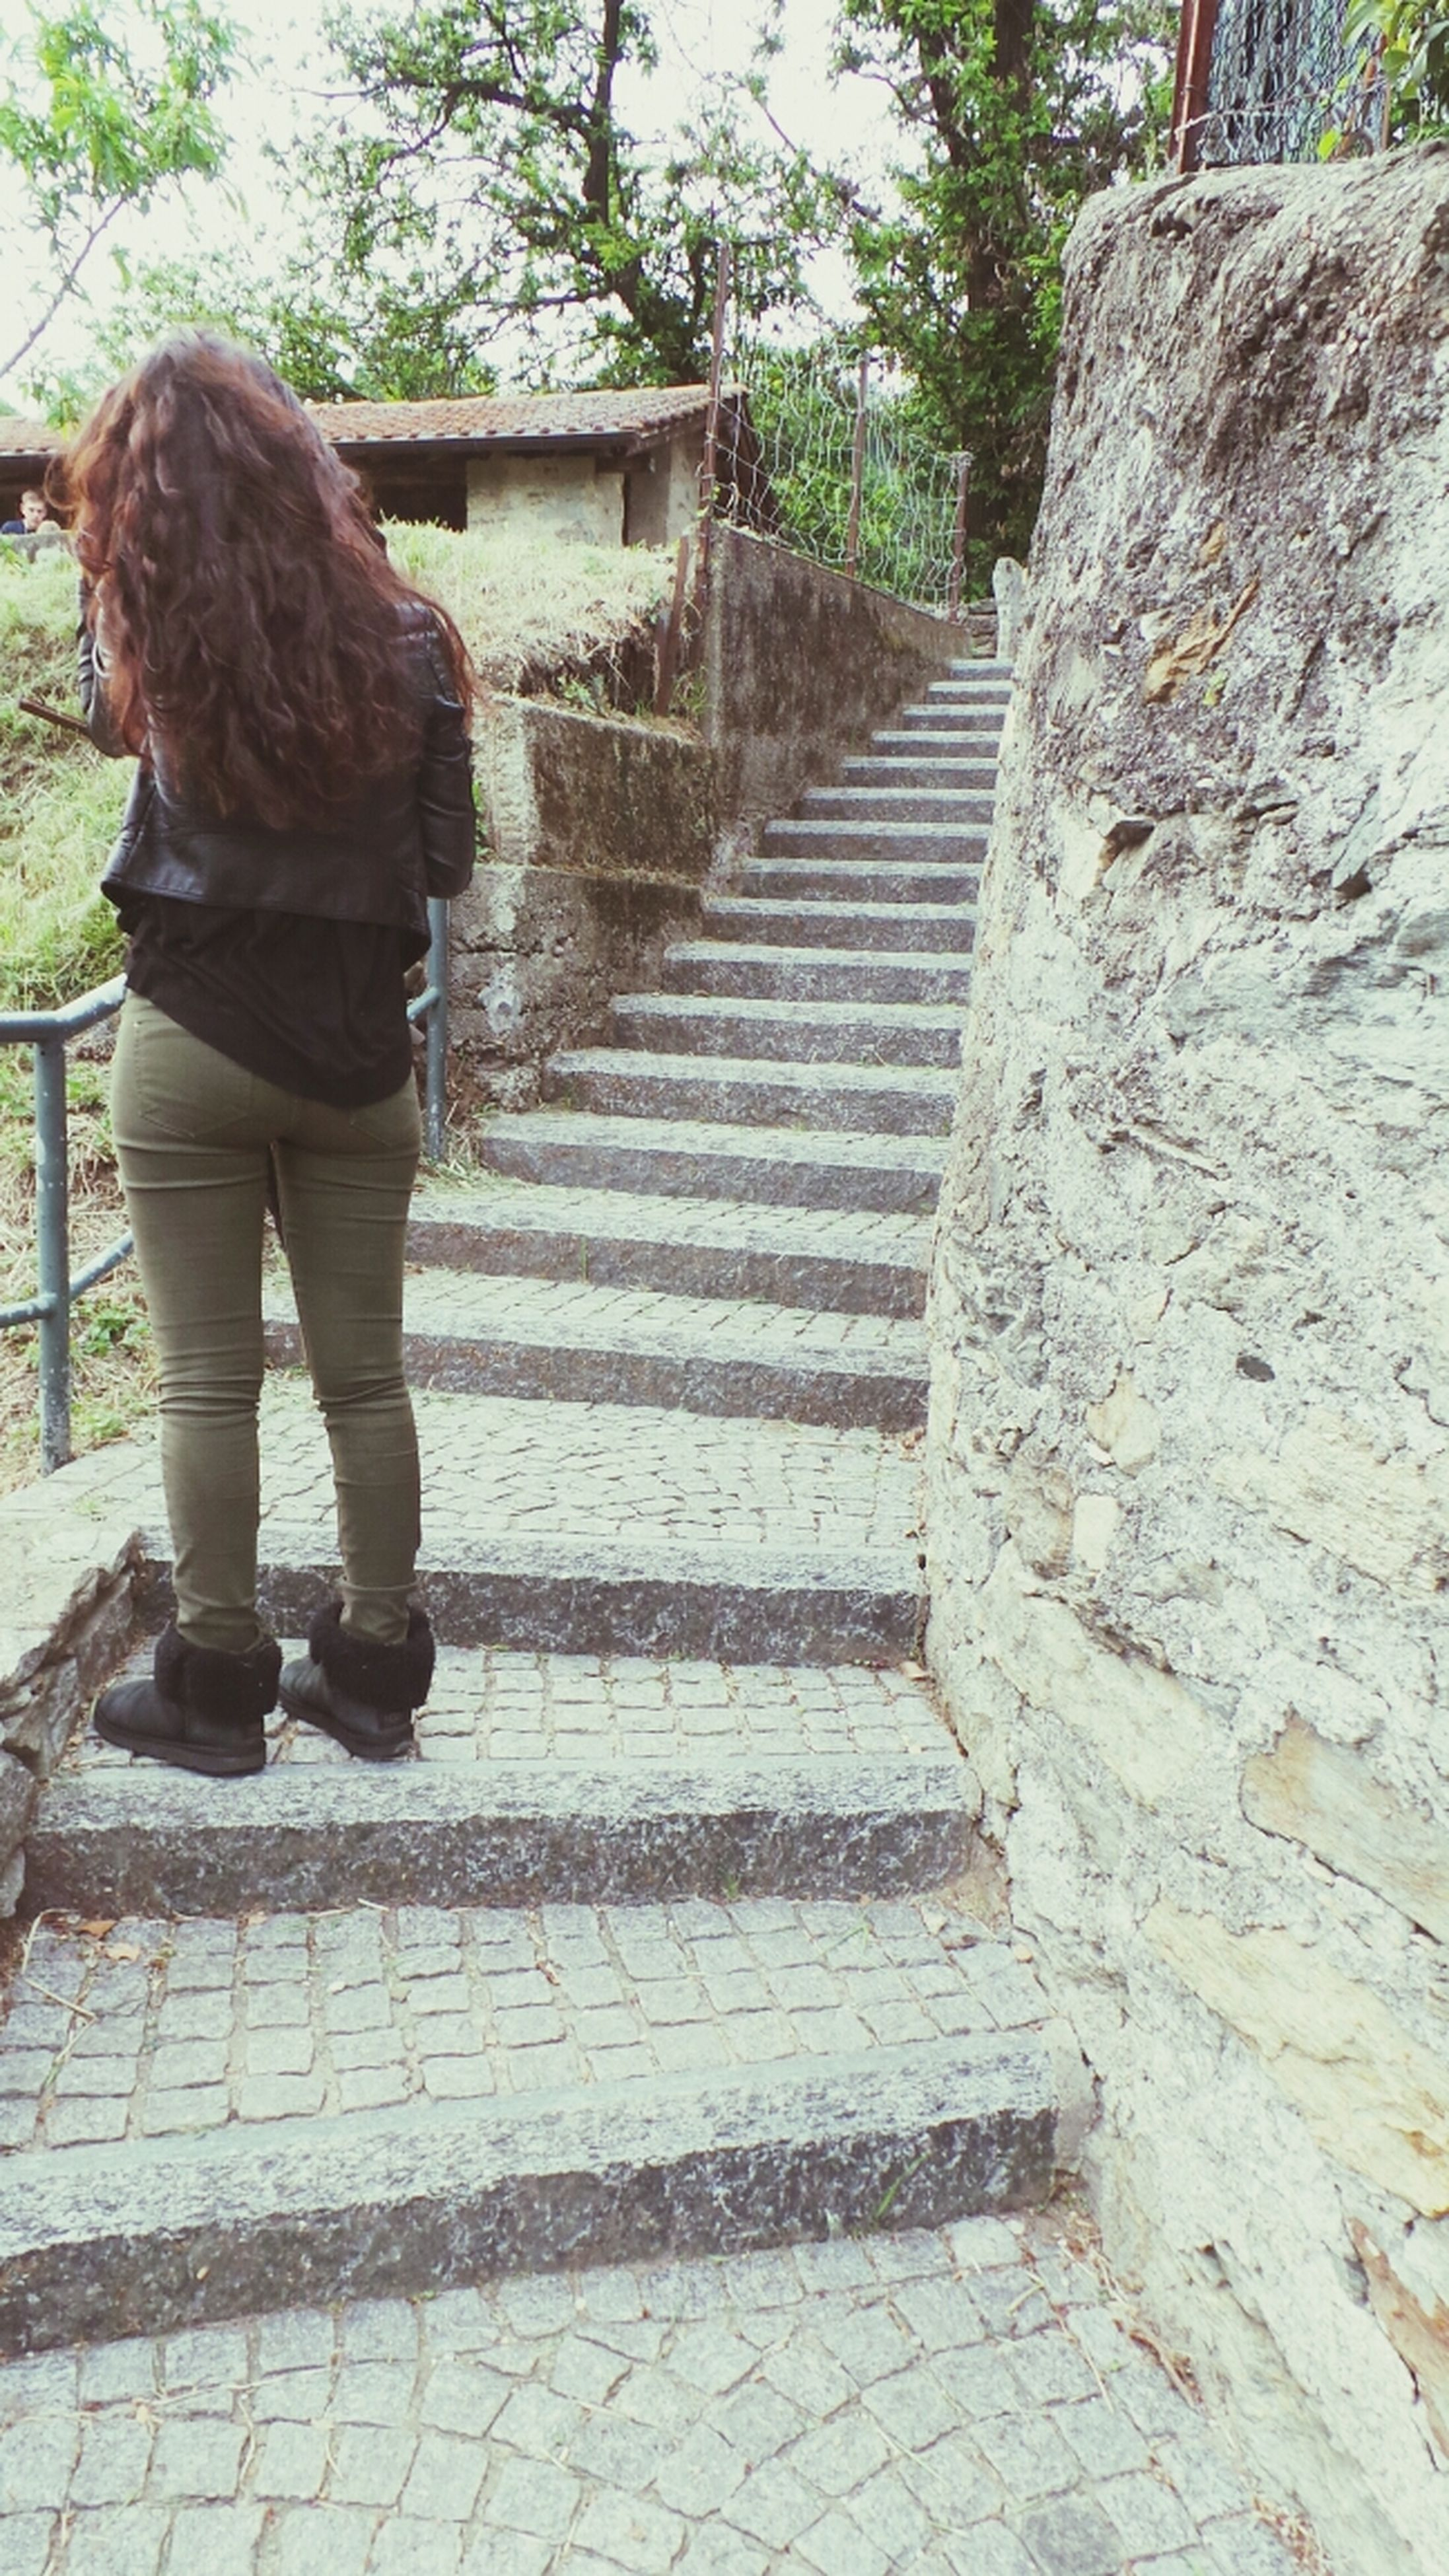 steps, lifestyles, leisure activity, full length, steps and staircases, casual clothing, rear view, built structure, standing, staircase, walking, architecture, person, the way forward, day, tree, railing, outdoors